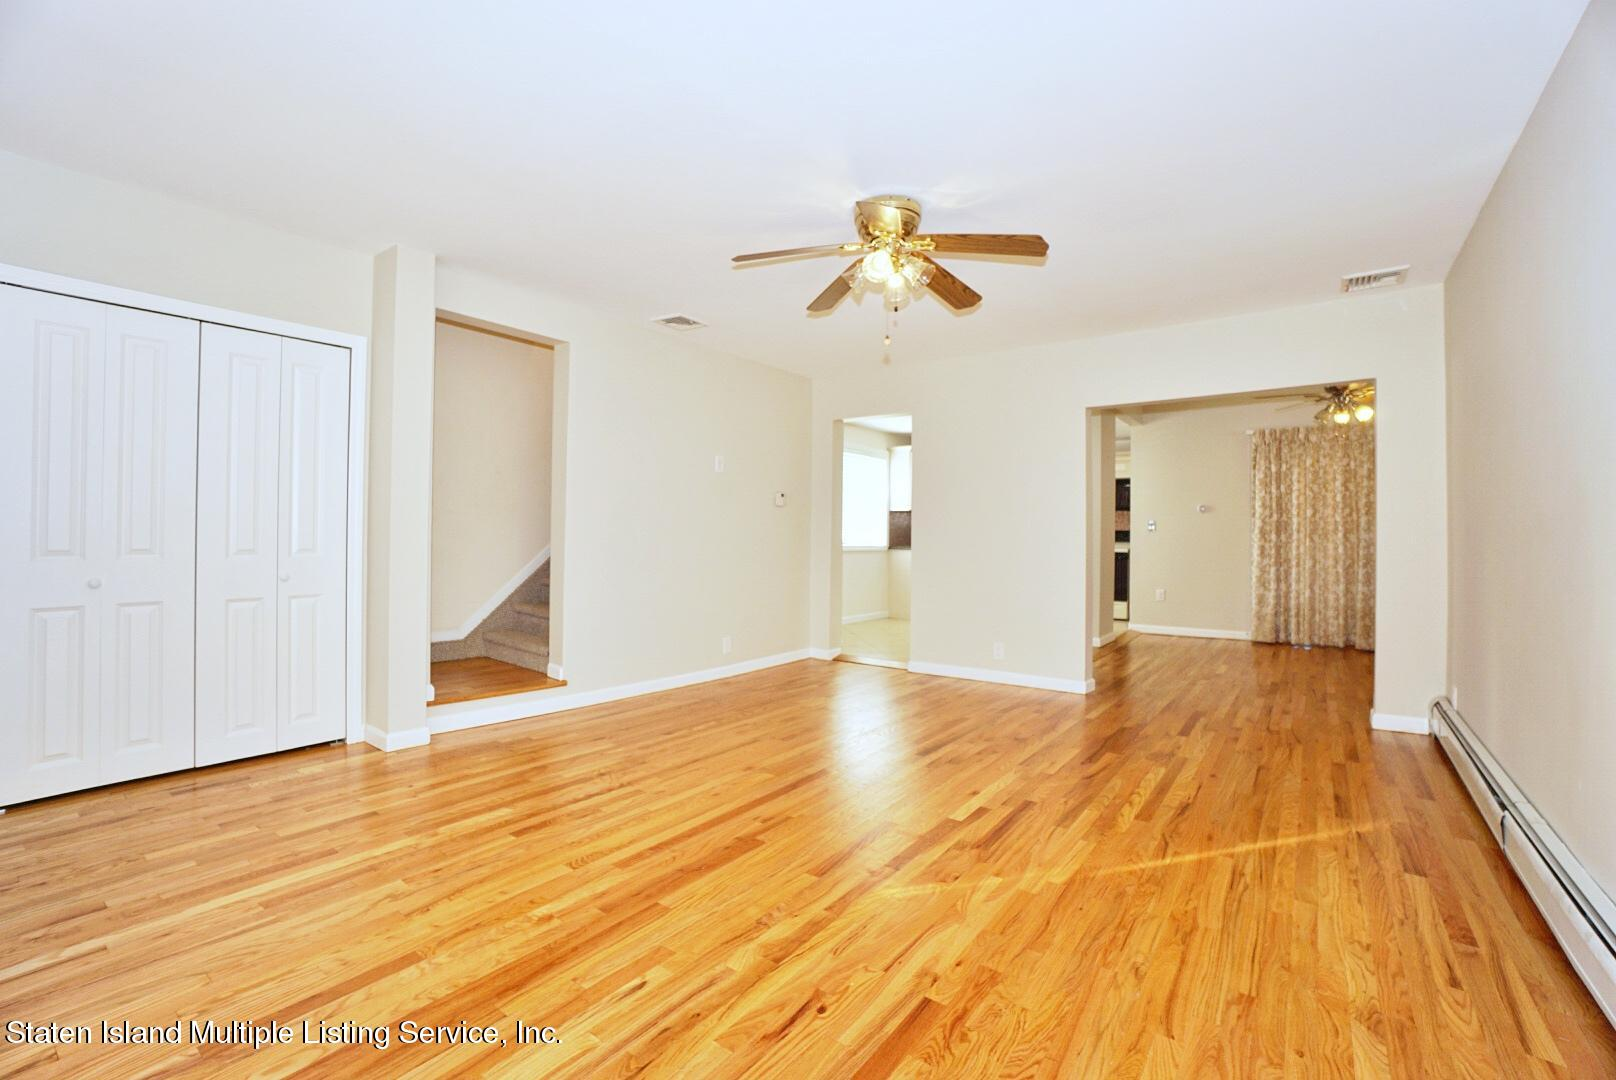 Single Family - Detached 97 Knox Place  Staten Island, NY 10314, MLS-1143147-10